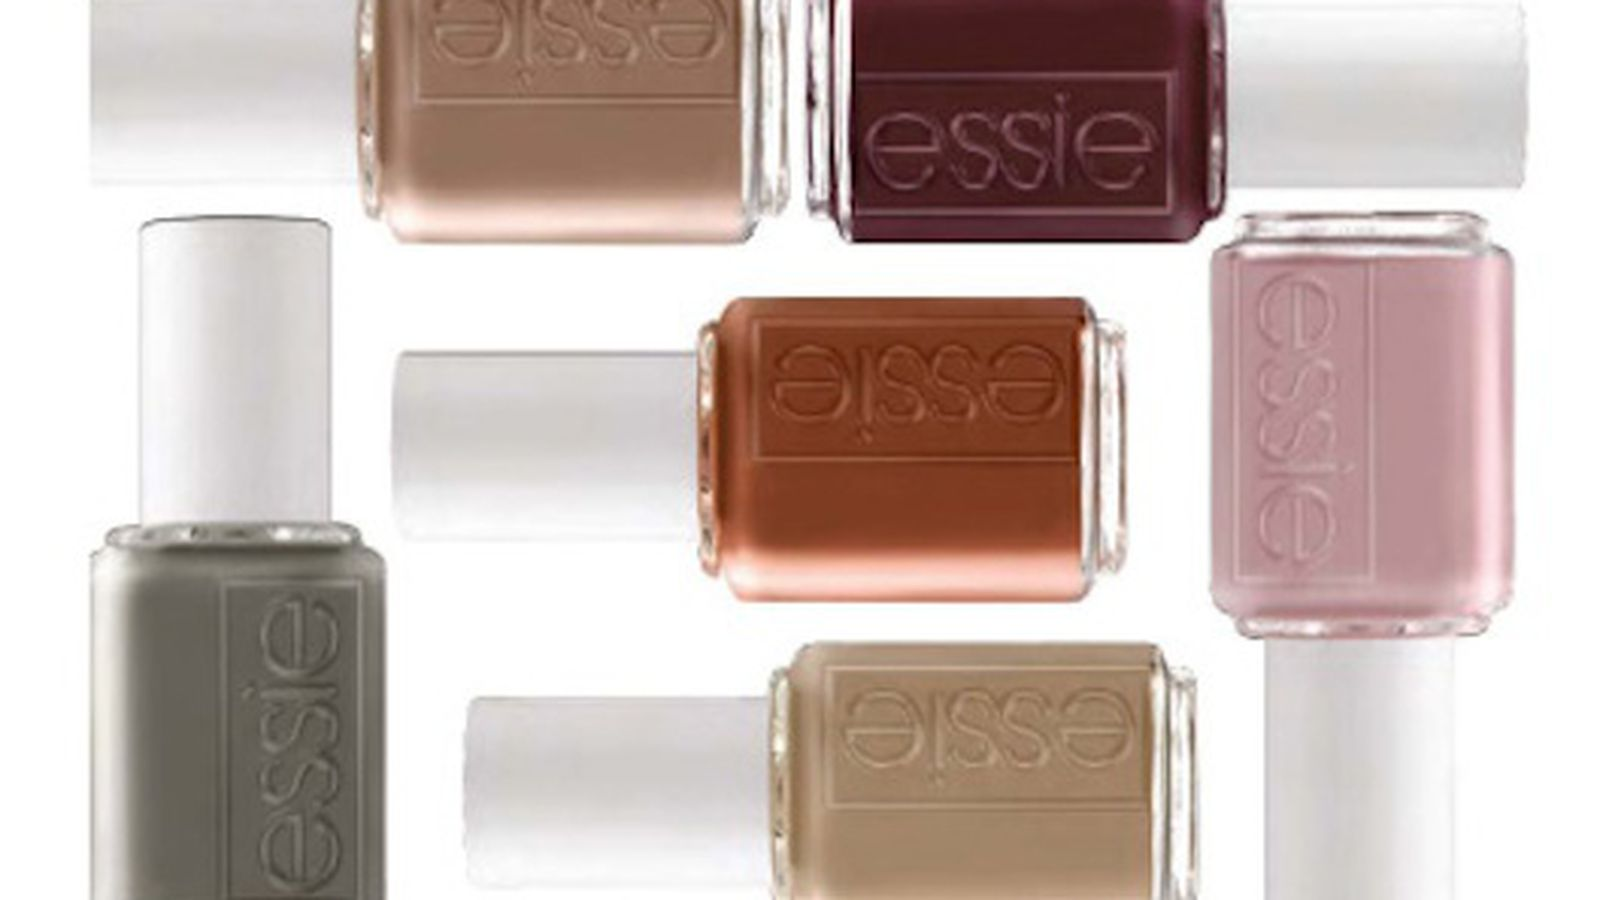 Essie's Fall Nail Polish Colors are Inspired by Post-War Handbags